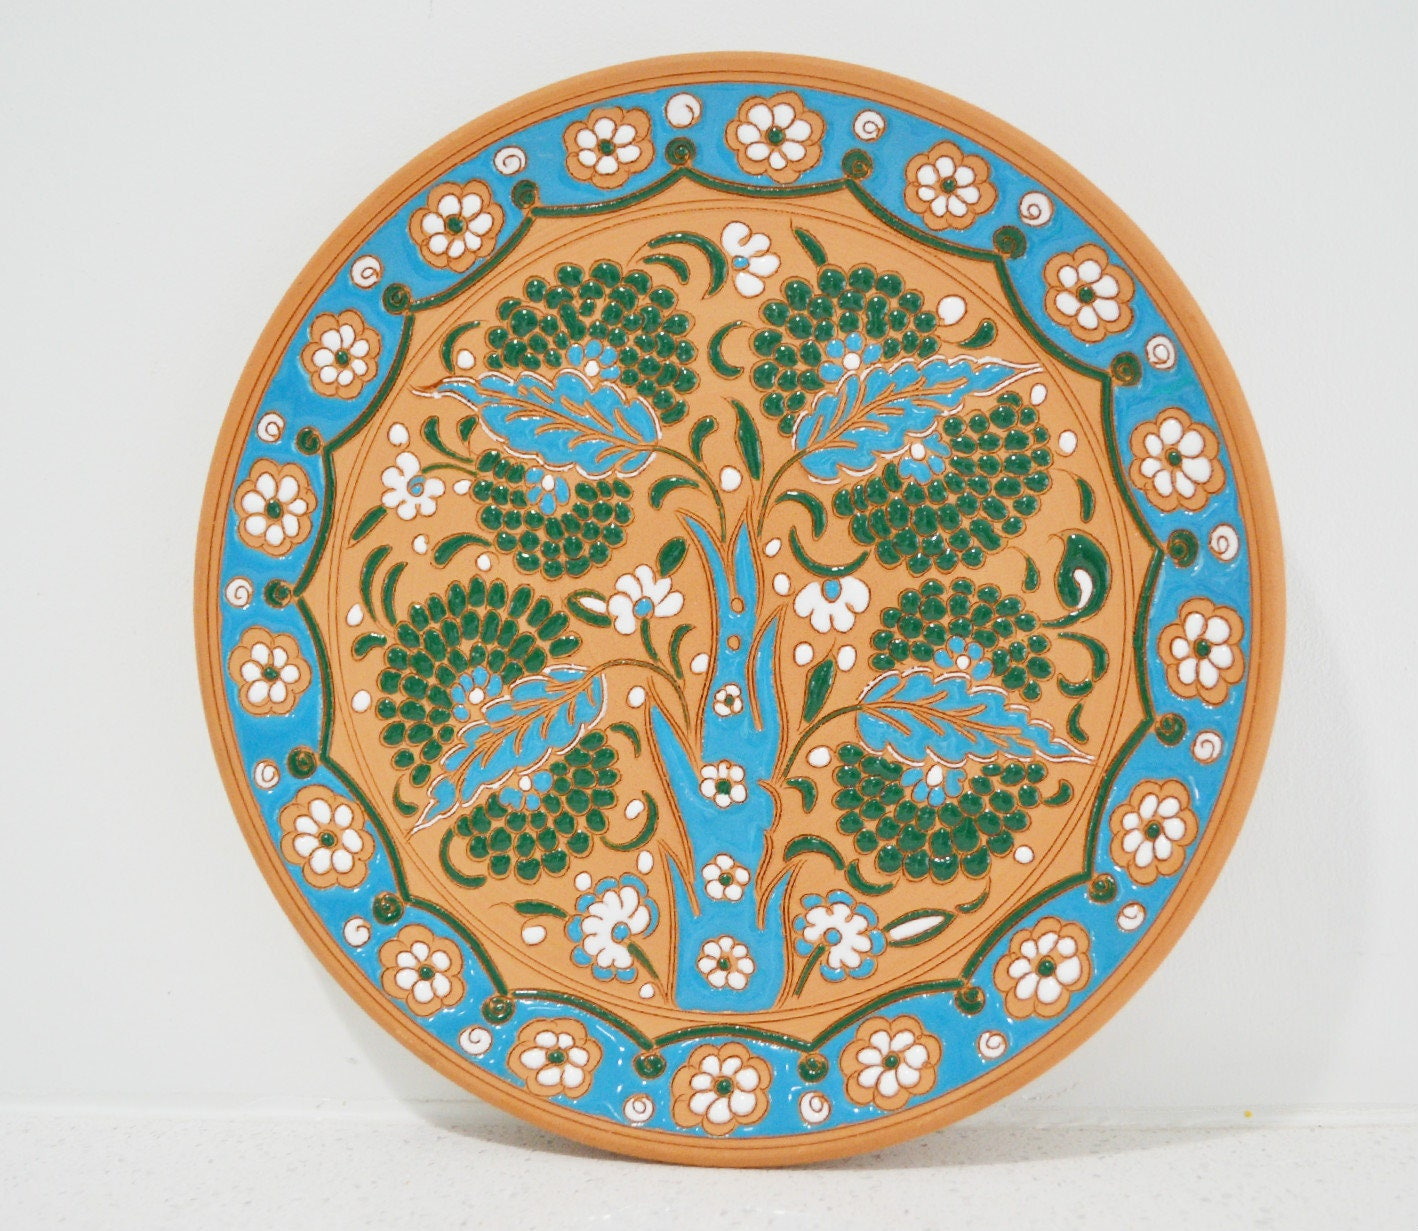 Vintage Ceramic Terracotta Decorative Plate  Ornamental Plate  Wall Plate   Electic Wall Decor